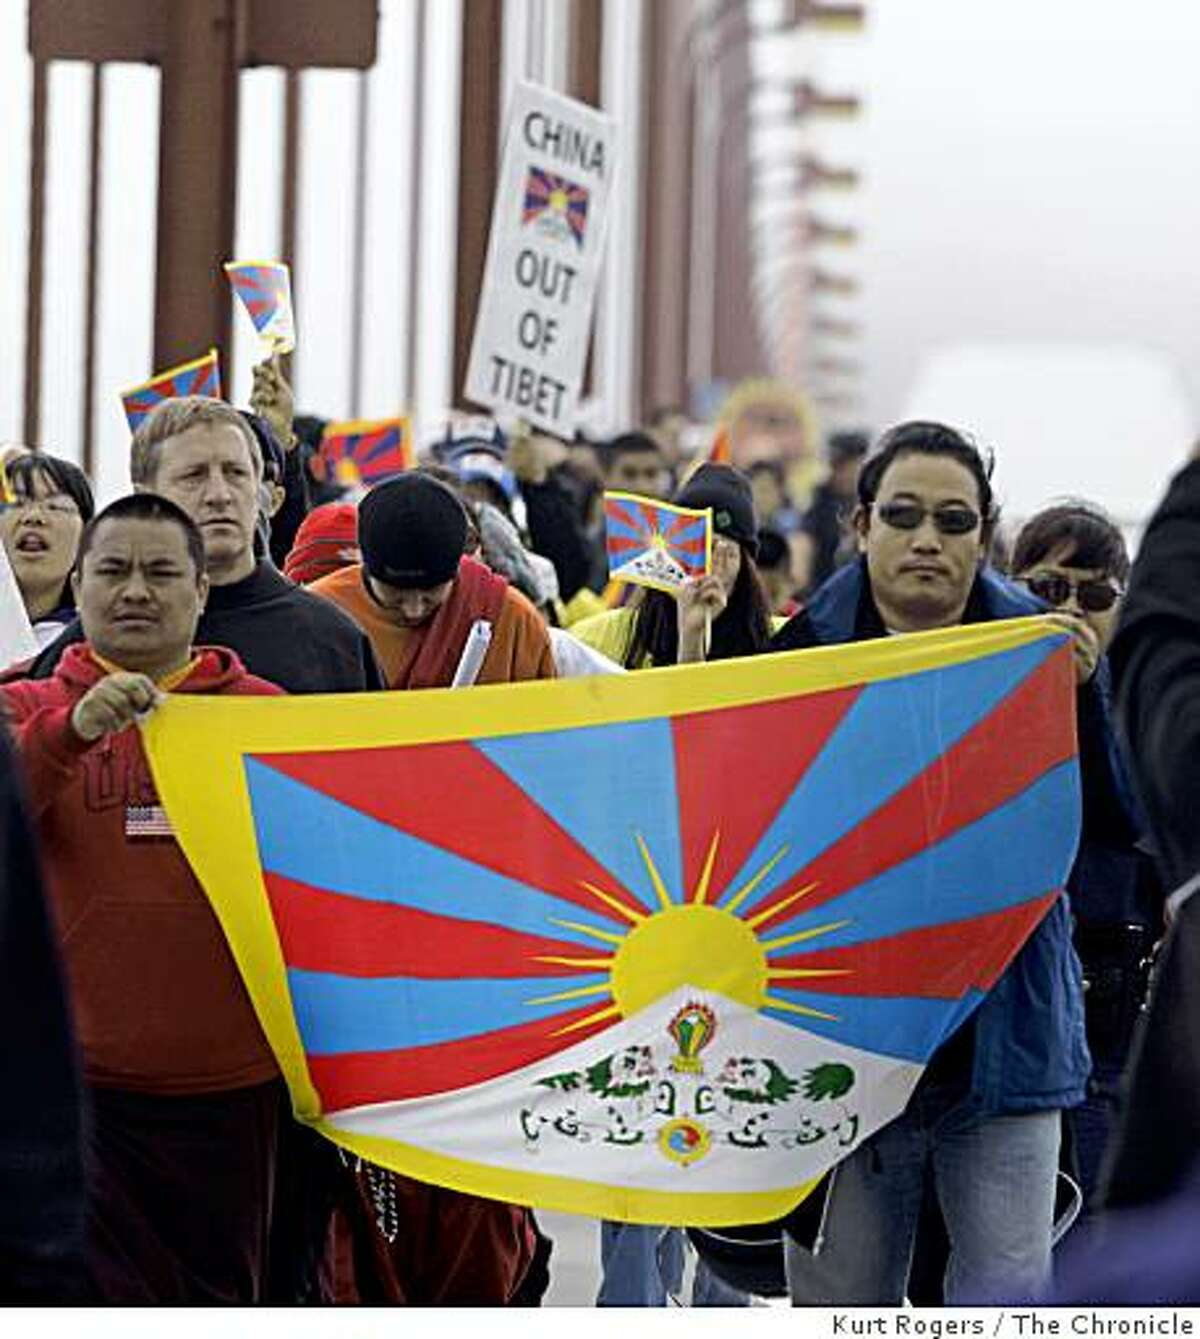 A few hundred protesters calling attention to human rights in Tibet march over the Golden Gate Bridge.